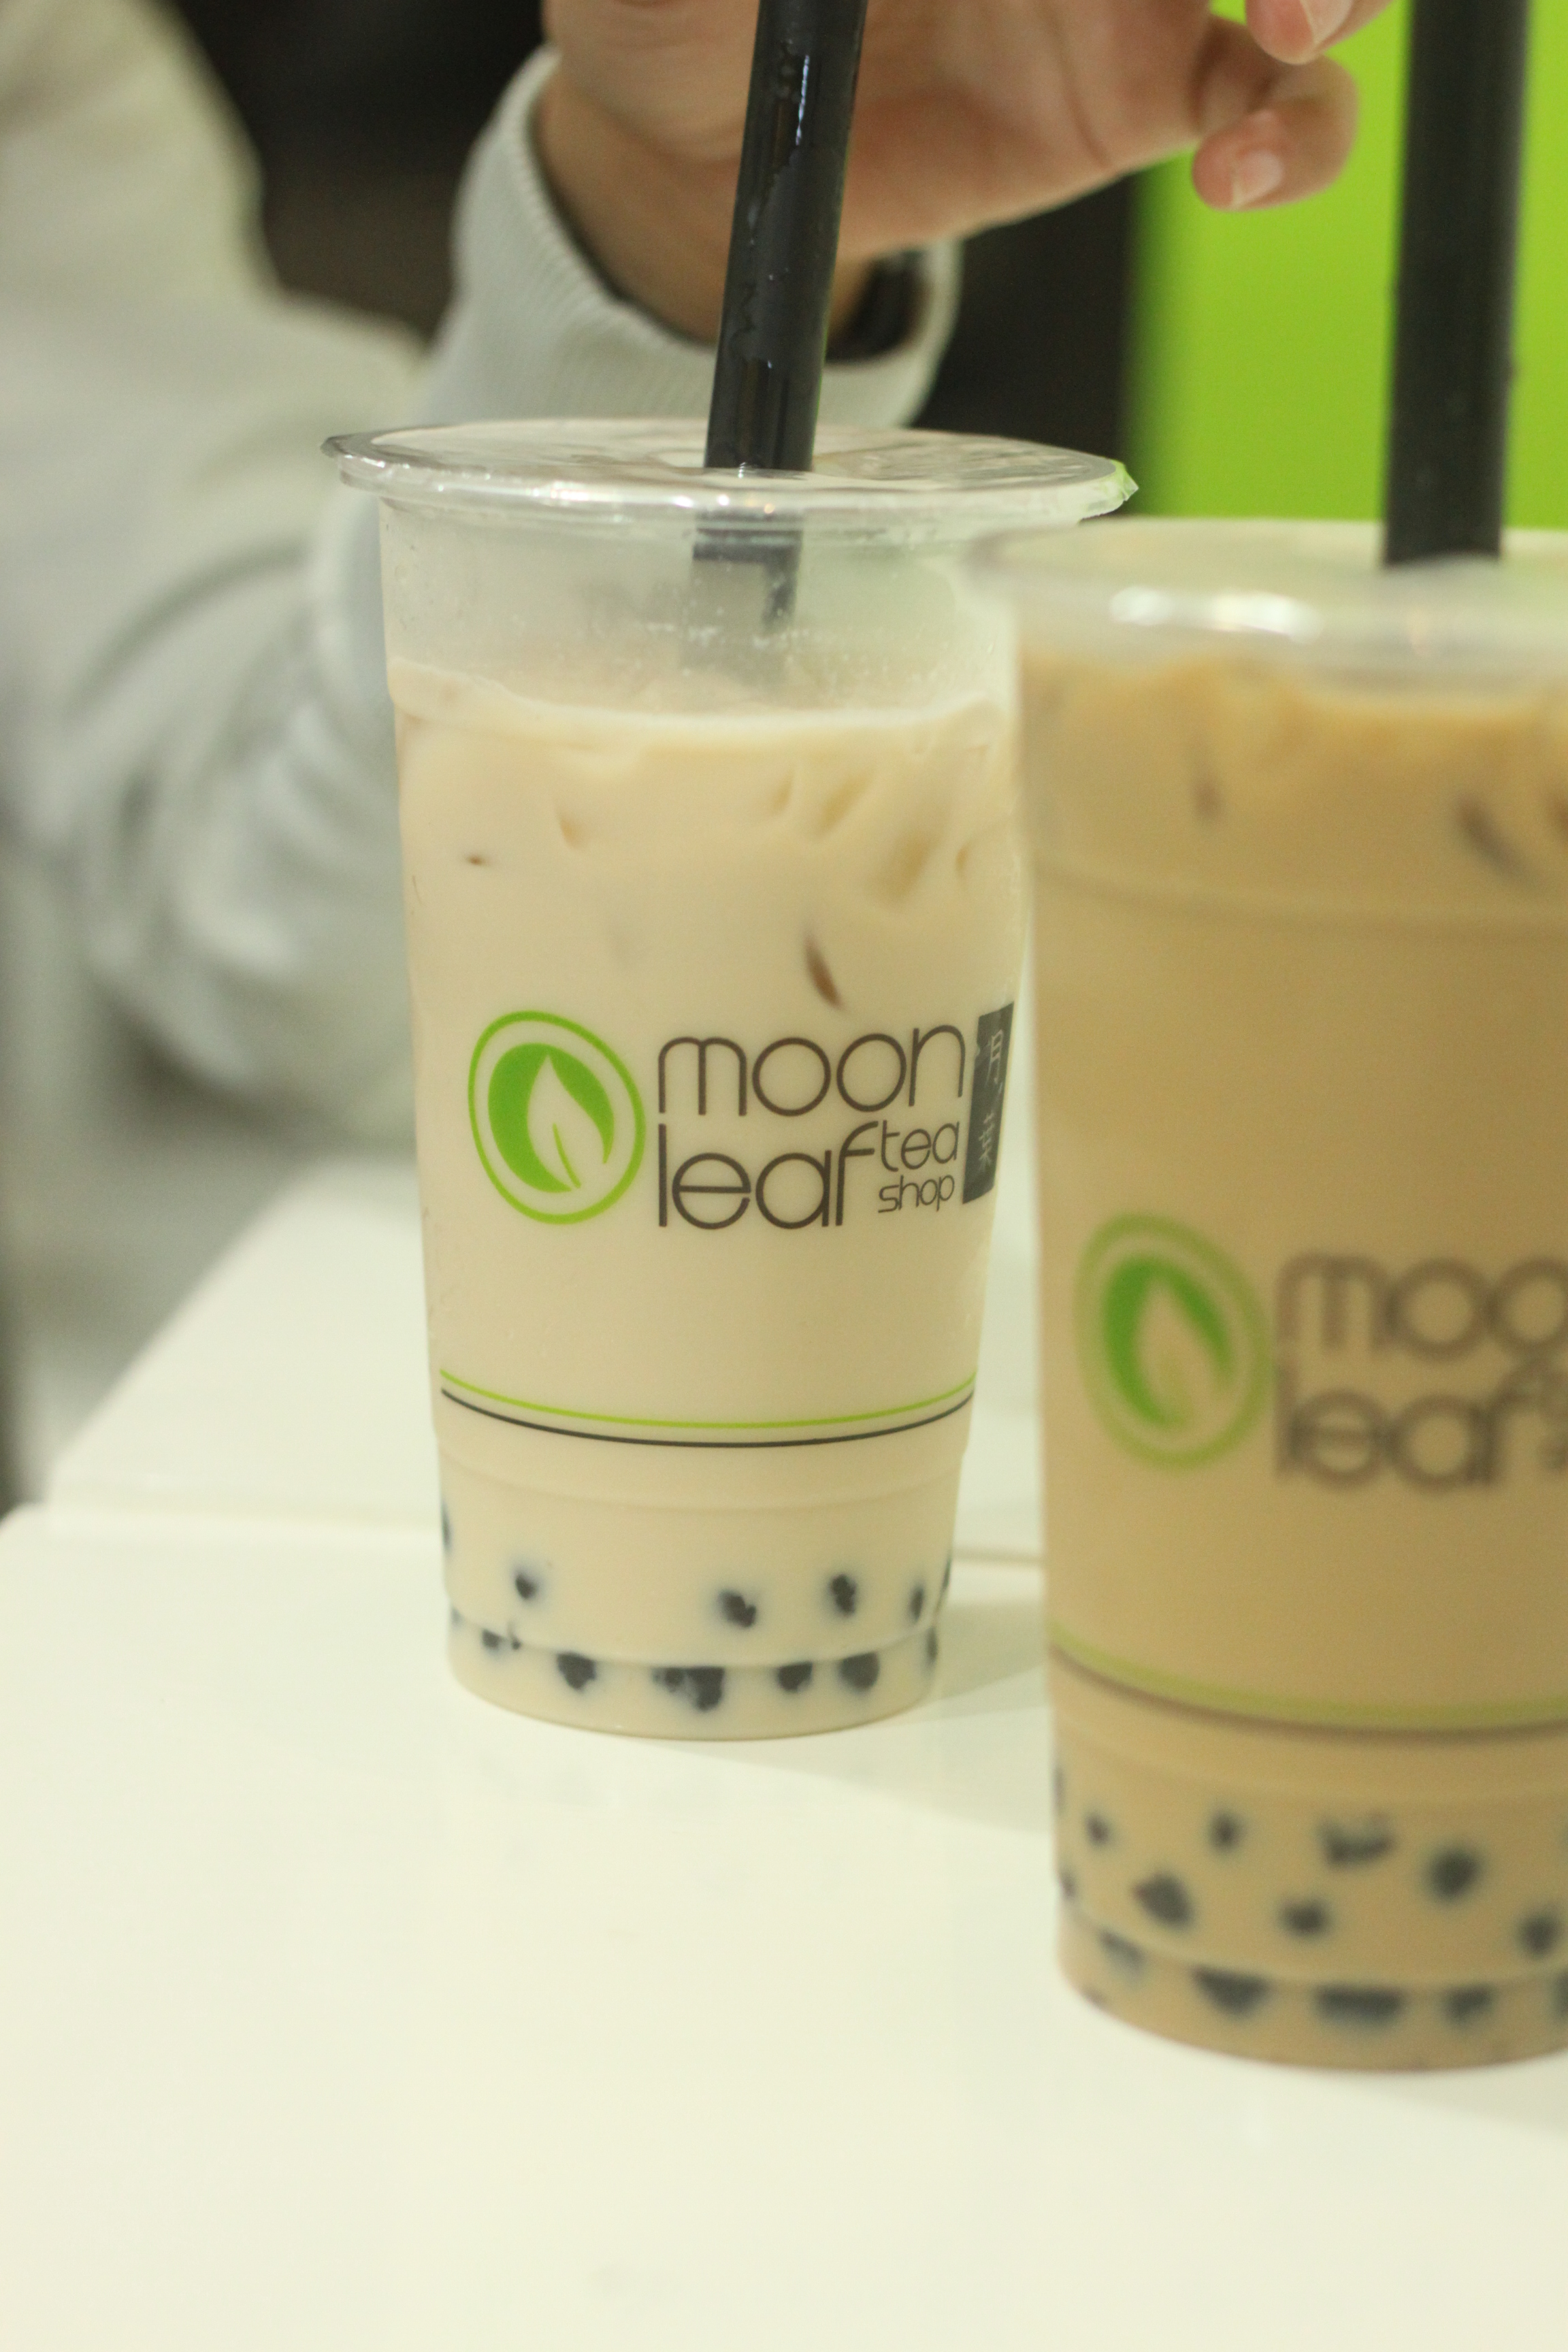 Moonleaf: A Different Kind of Brew!